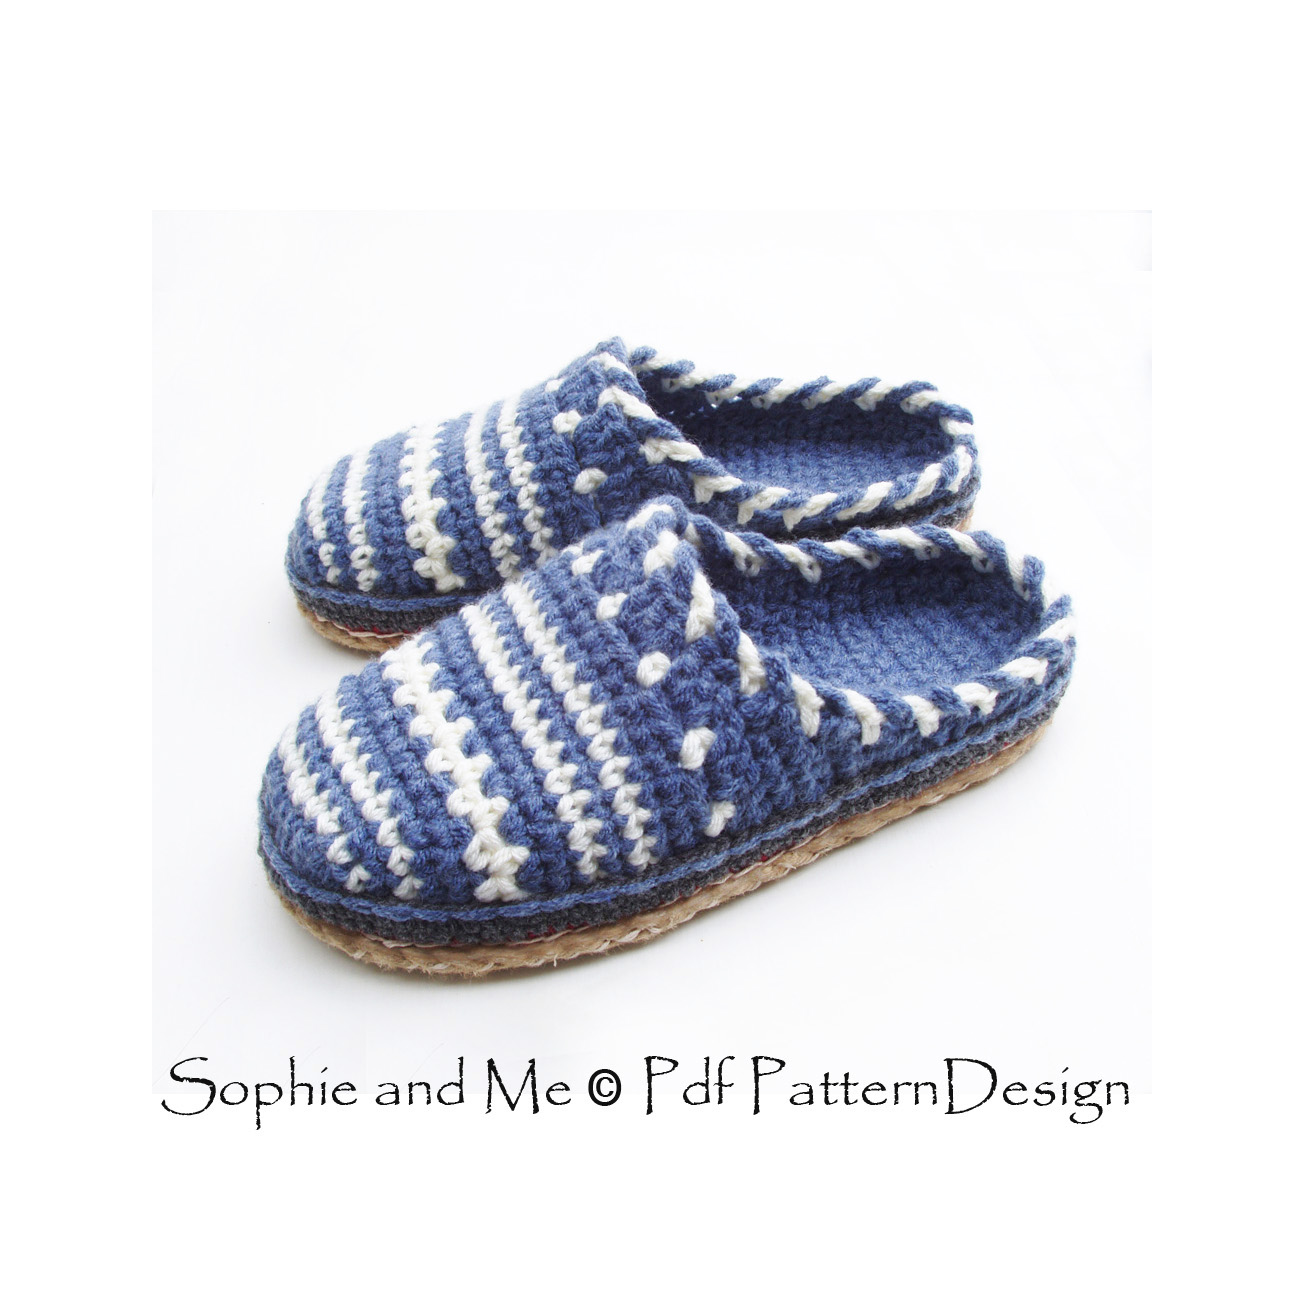 Sophie and Me: SWEATER CLOG SLIP IN CROCHET SLIPPERS!